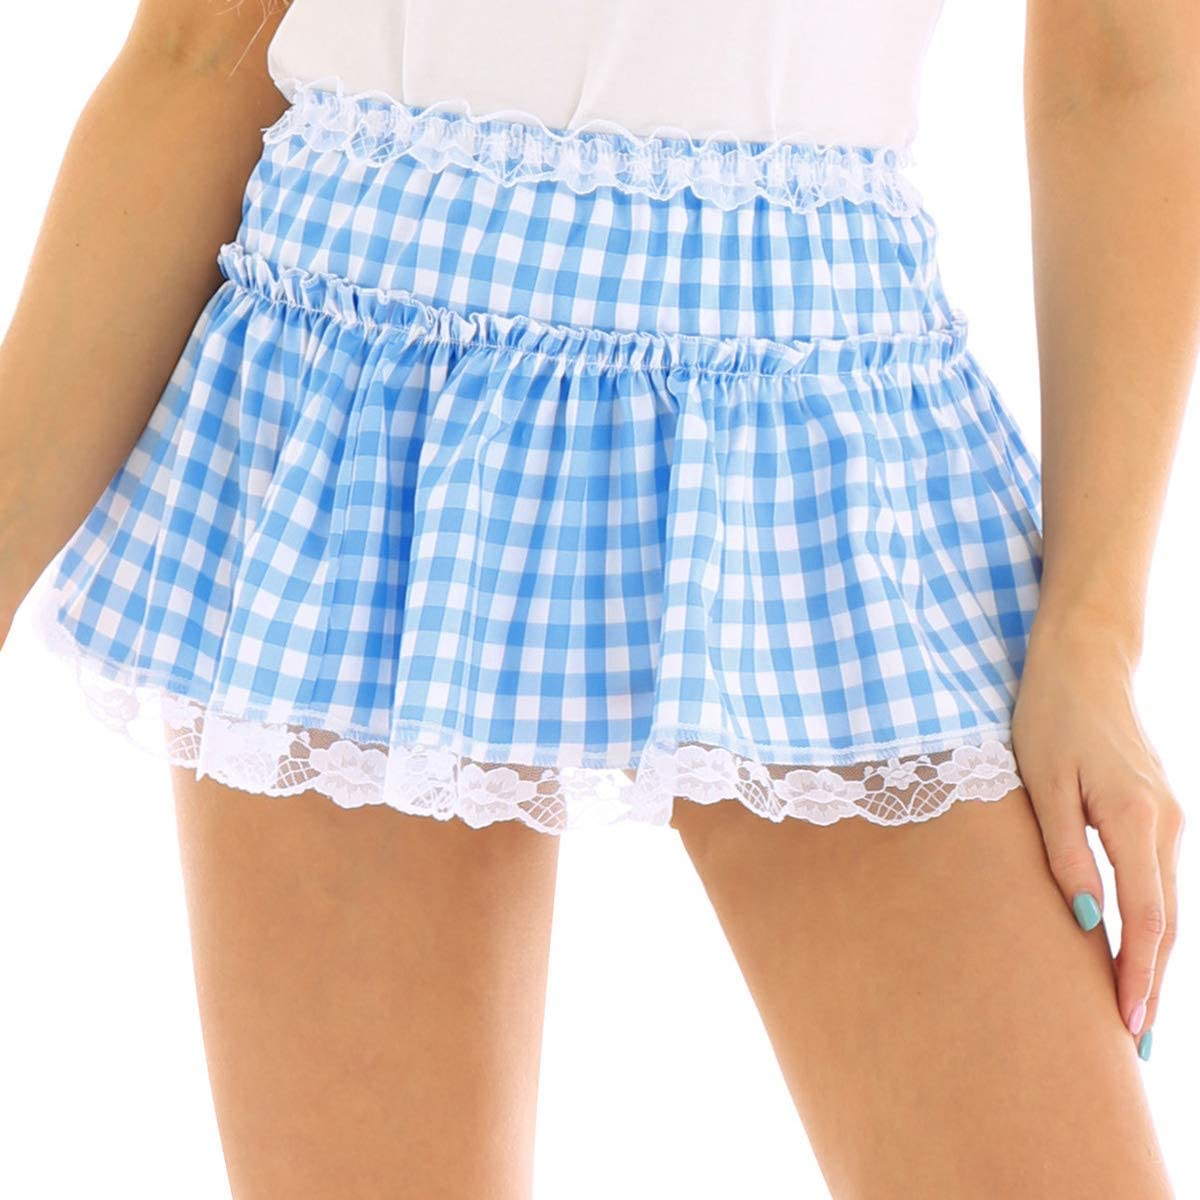 Gingham Frilly Pin Up Girl Camisole XXL Made to Order in Sizes XS